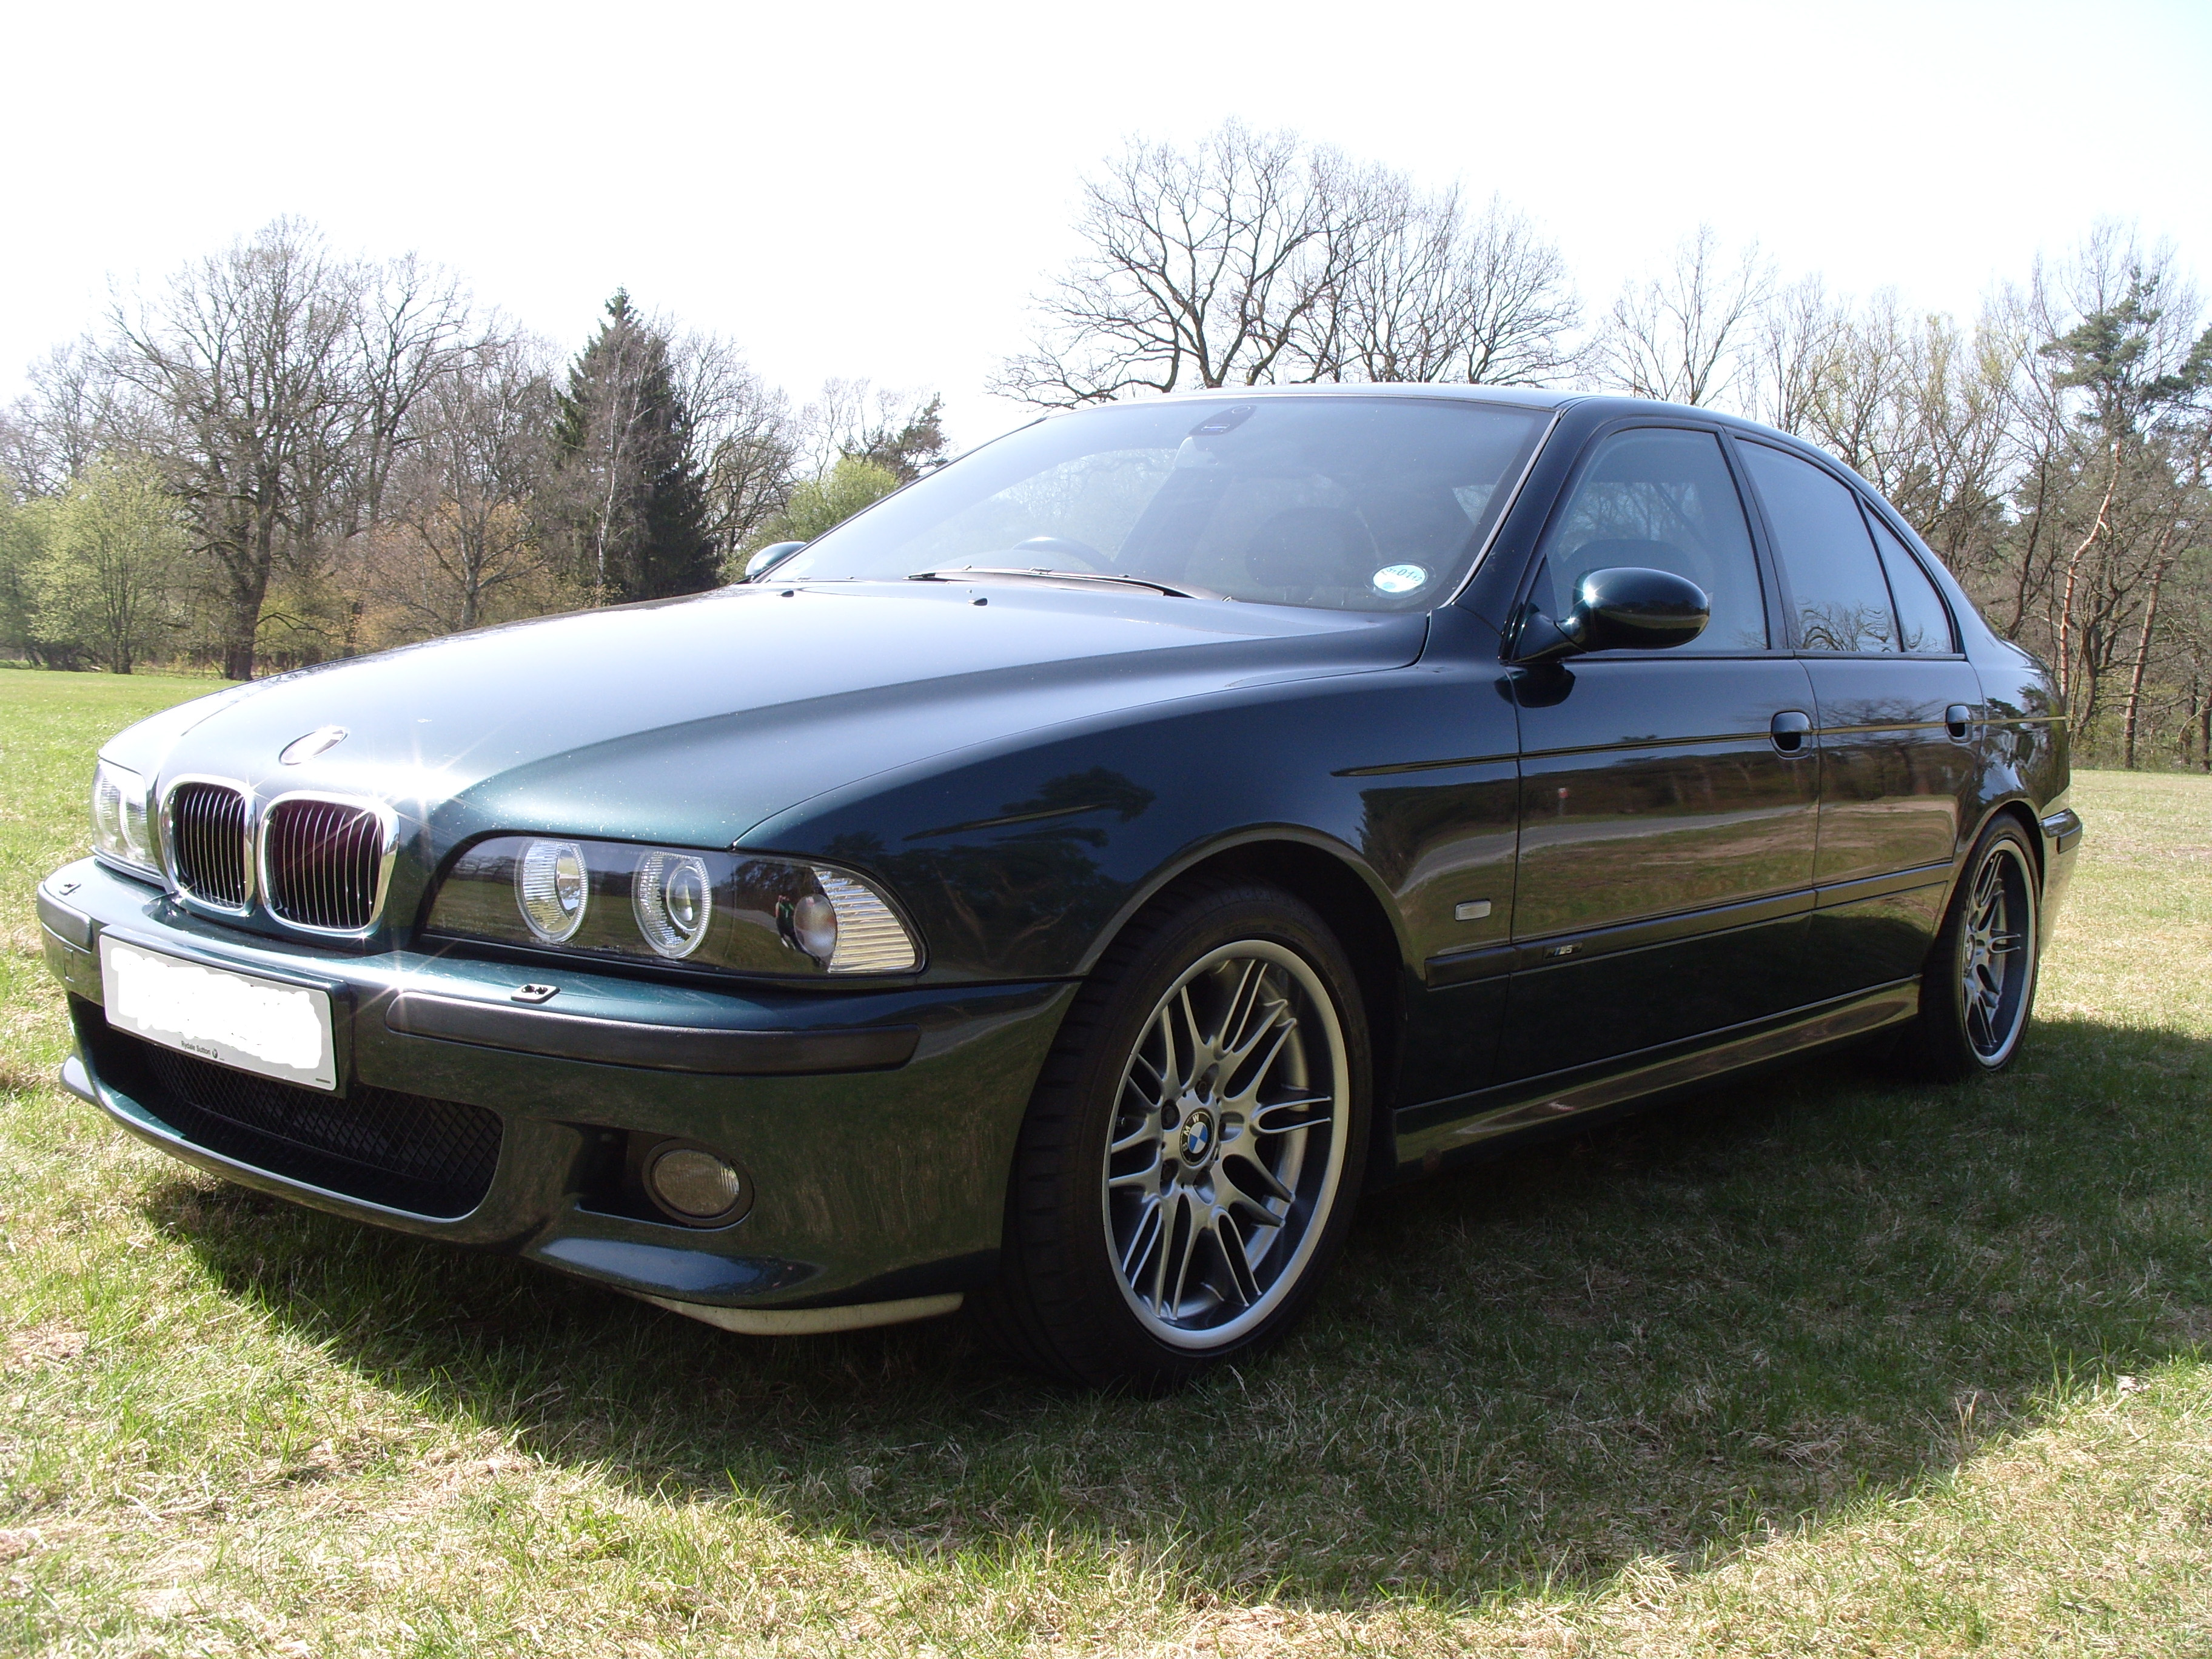 Oxford Green E39 M5 Decent Pics At Last-s1050170.jpg